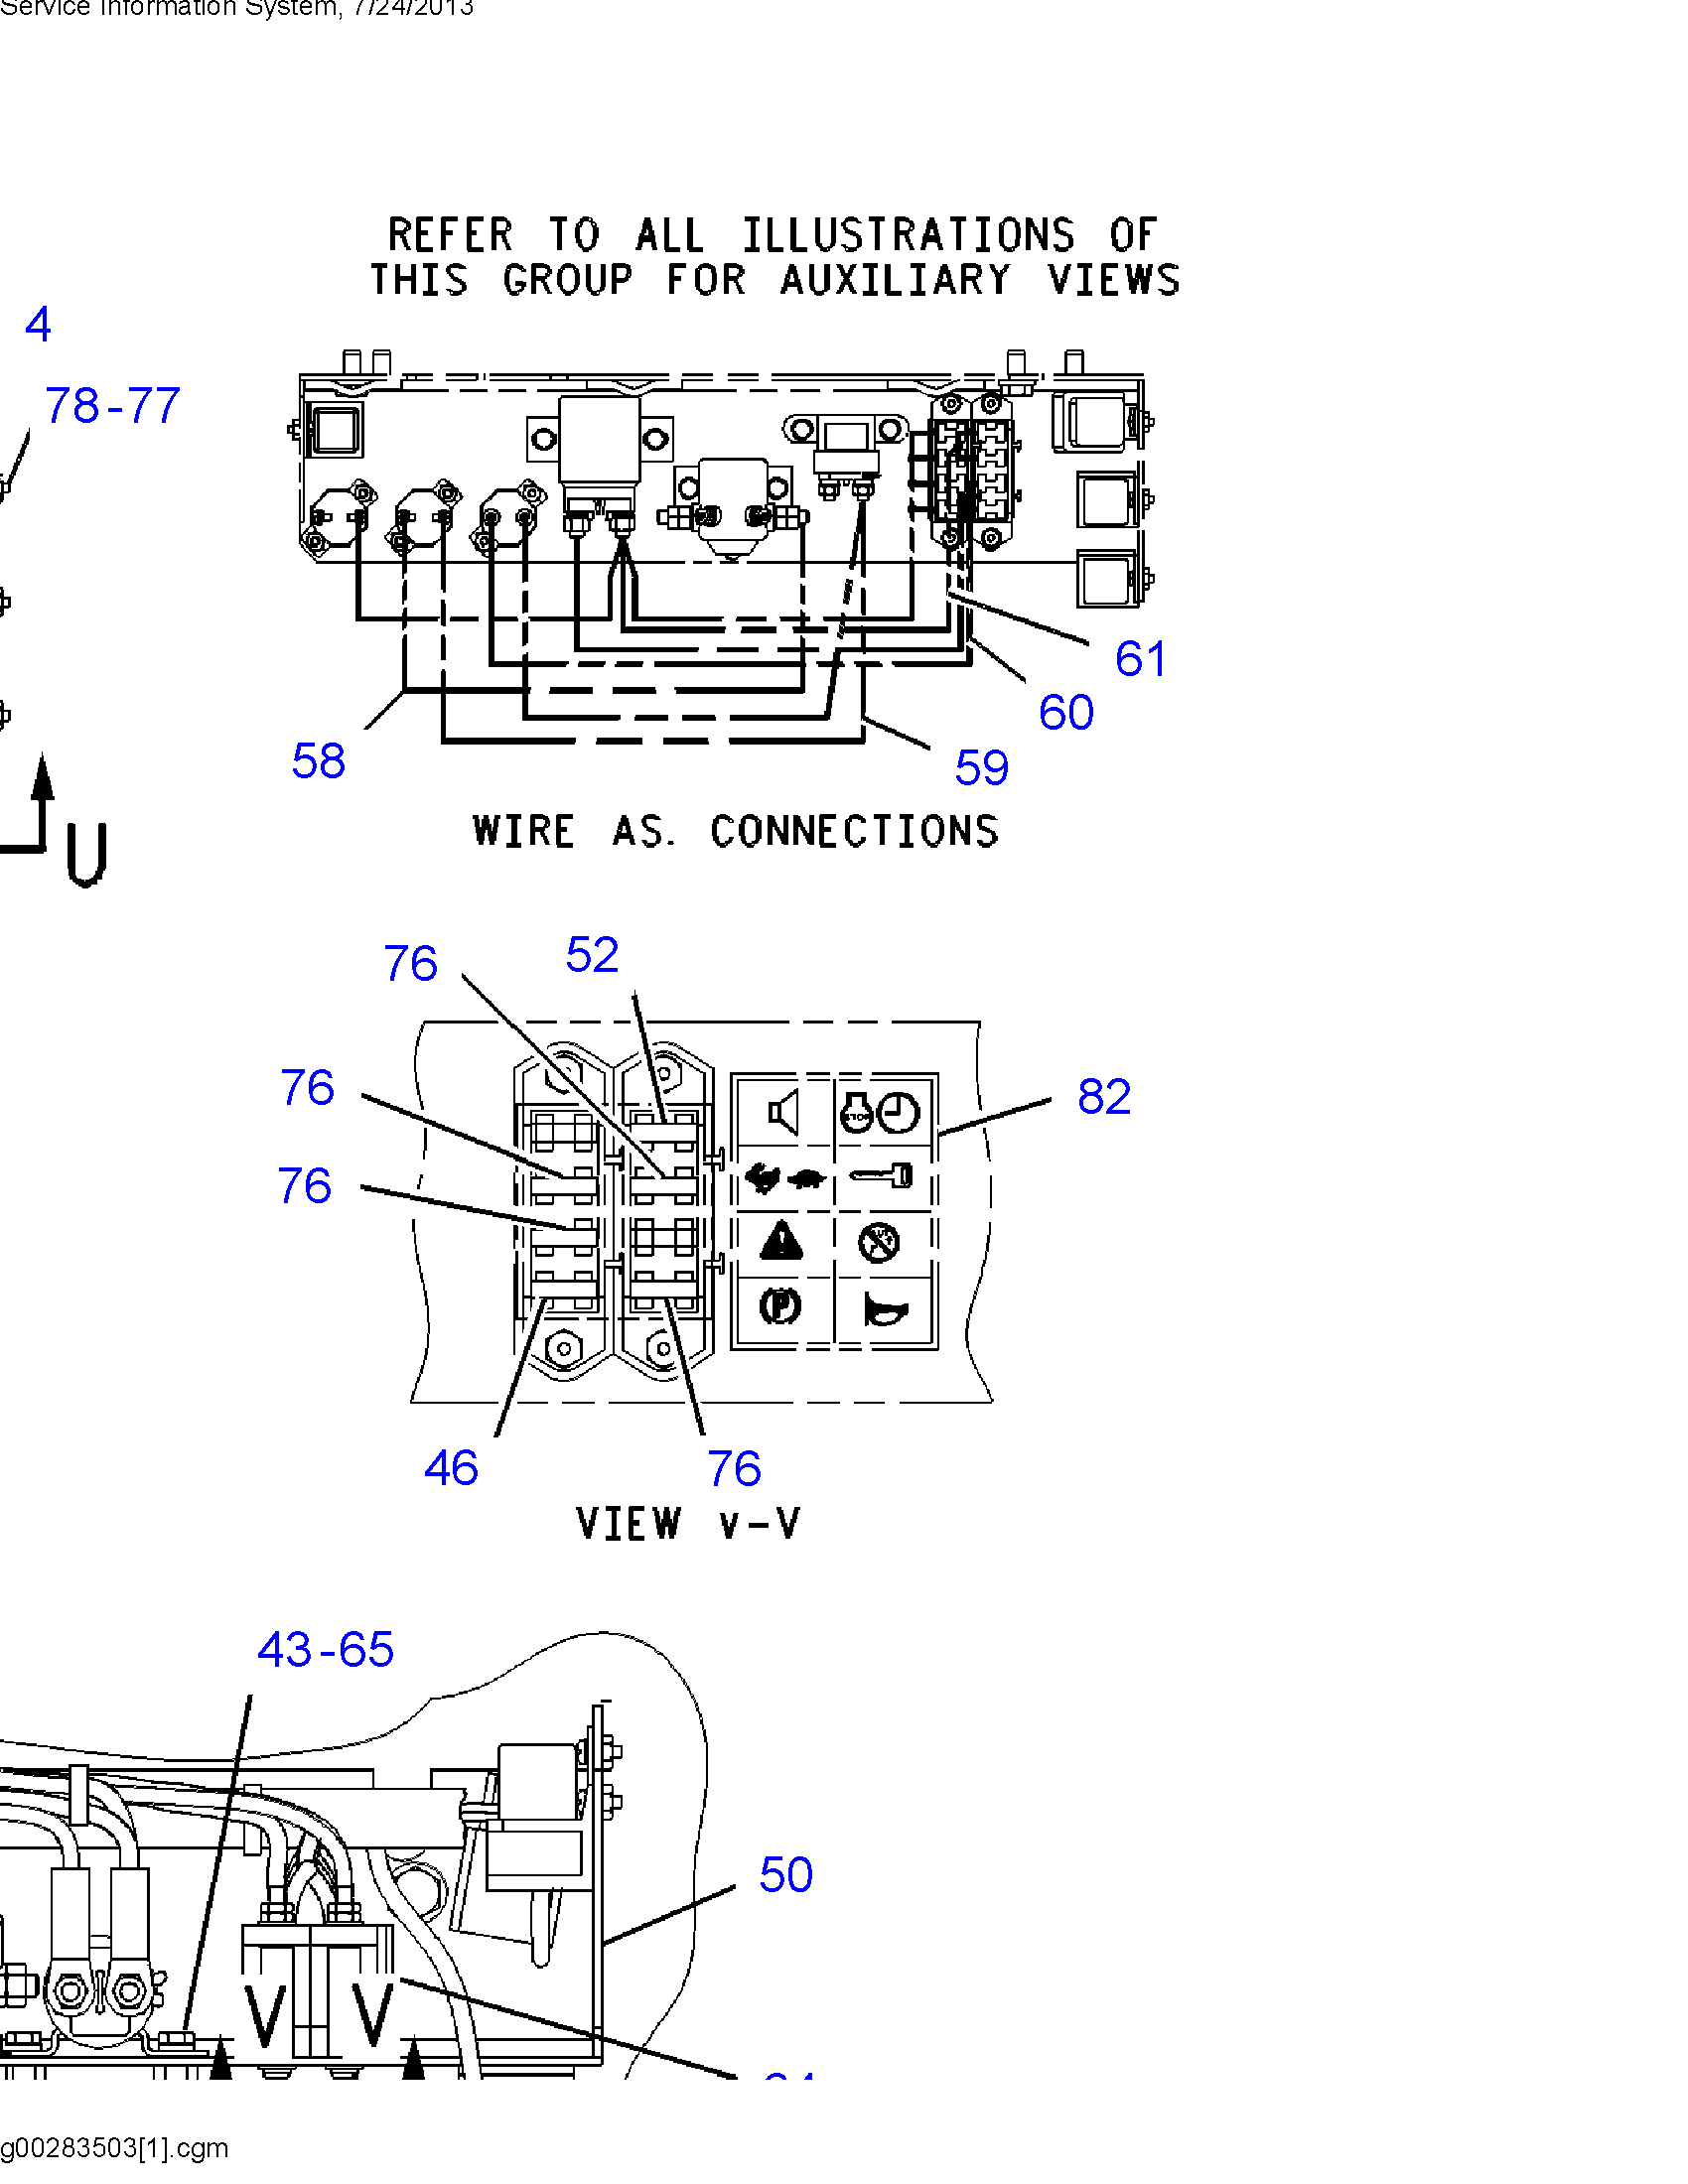 Where Is The Fuse Box For A 2000d5 Cat Bulldozer